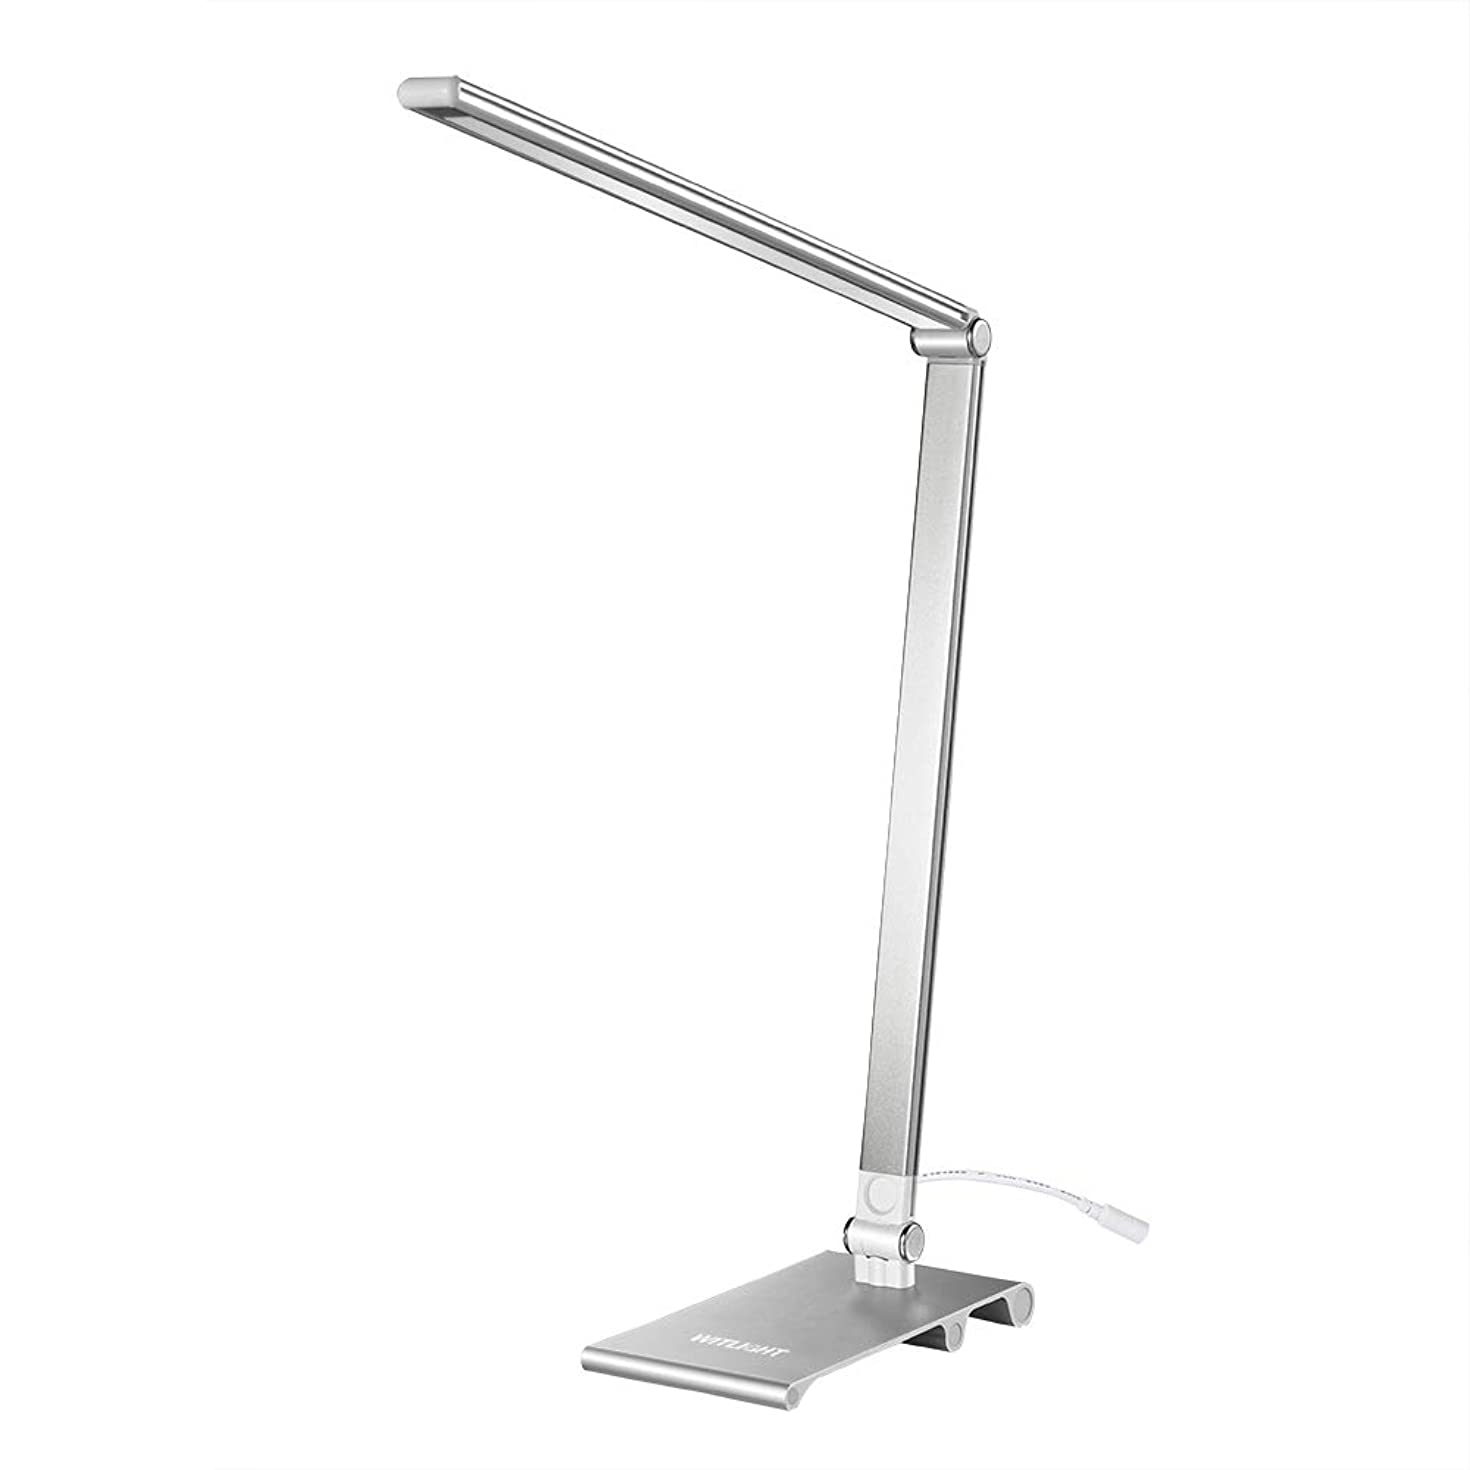 WITLIGHT Dimmable LED Desk Lamp for Laptop, Touch Sensor Table Lamp with 3 Brightness Levels, Office Light USB Powered, 4000-5000K Eye Caring Natural LEDs, Ultra Thin Aluminum Casing, Silver